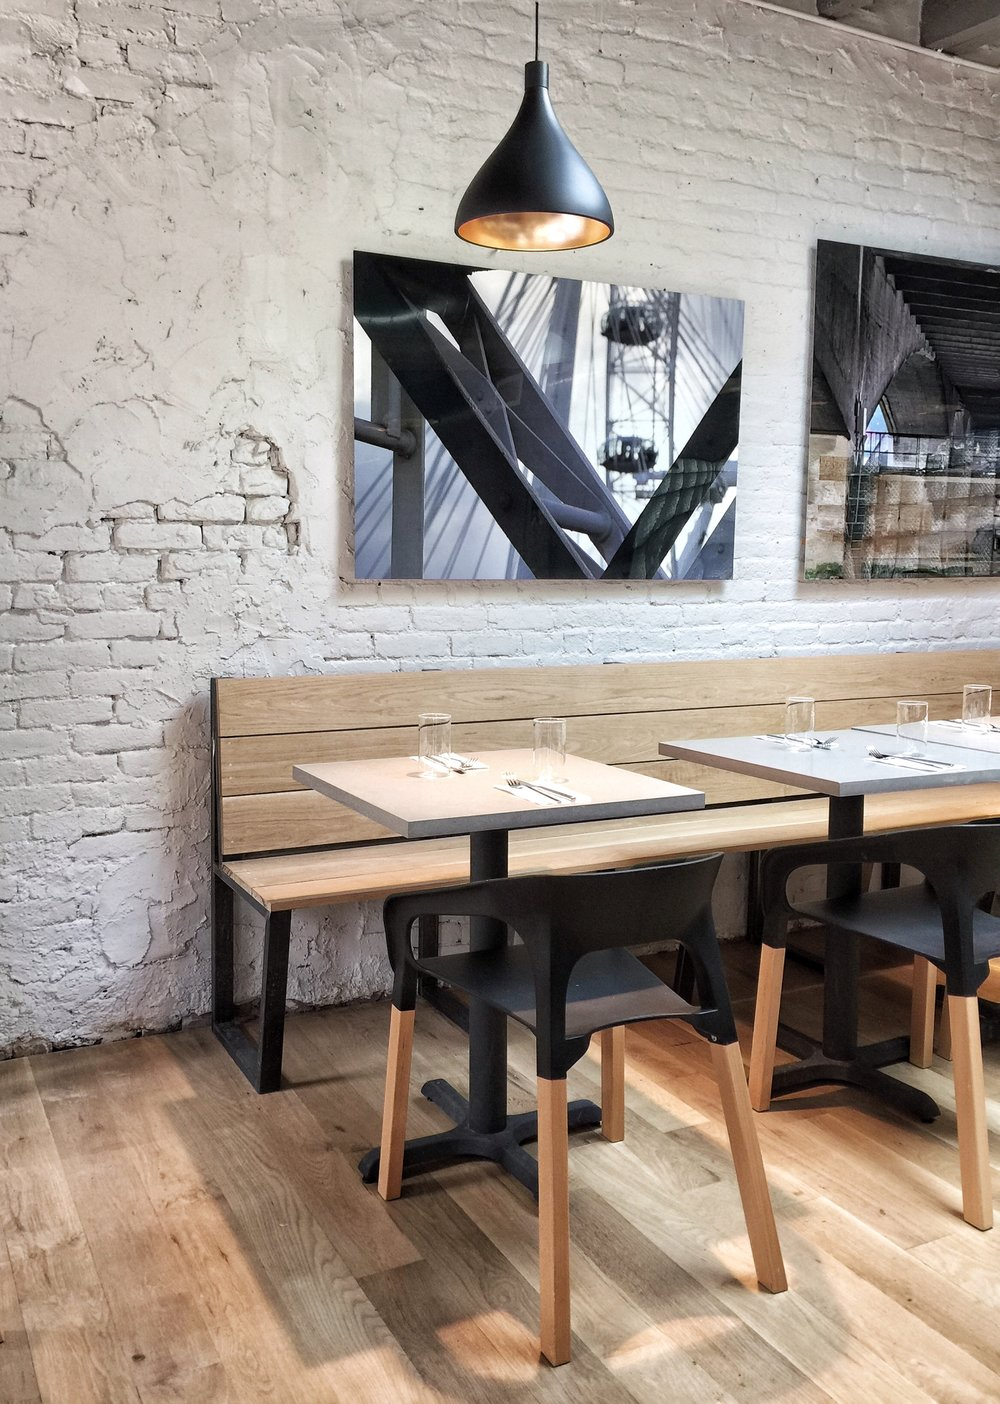 ROSE & IVY Journal A Taste of New York East One Coffee Roasters & Eatery